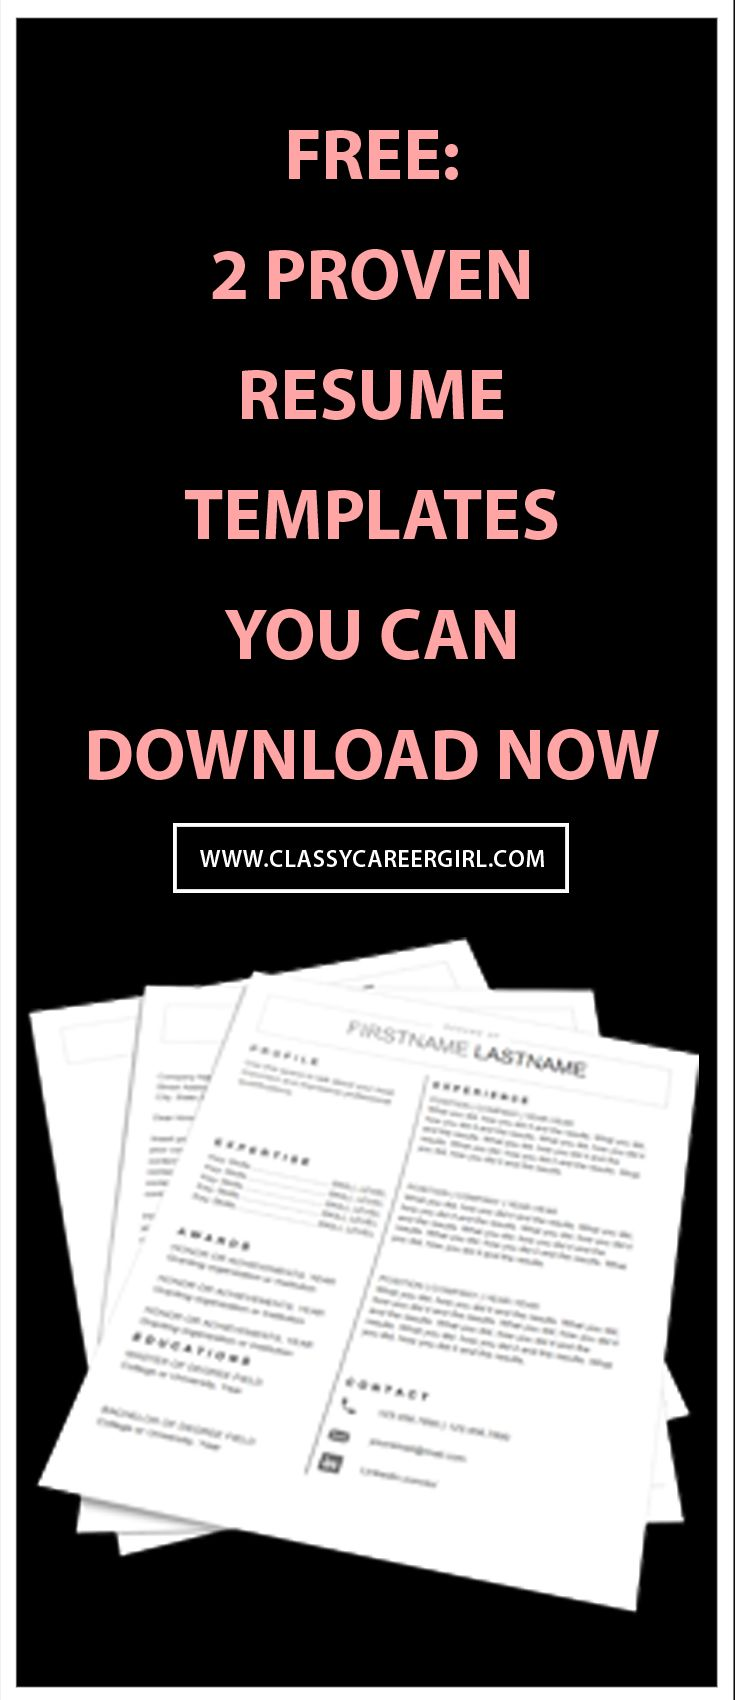 best ideas about resume resume template save time get your dream job simple resume templates you can populate in 20 minutes